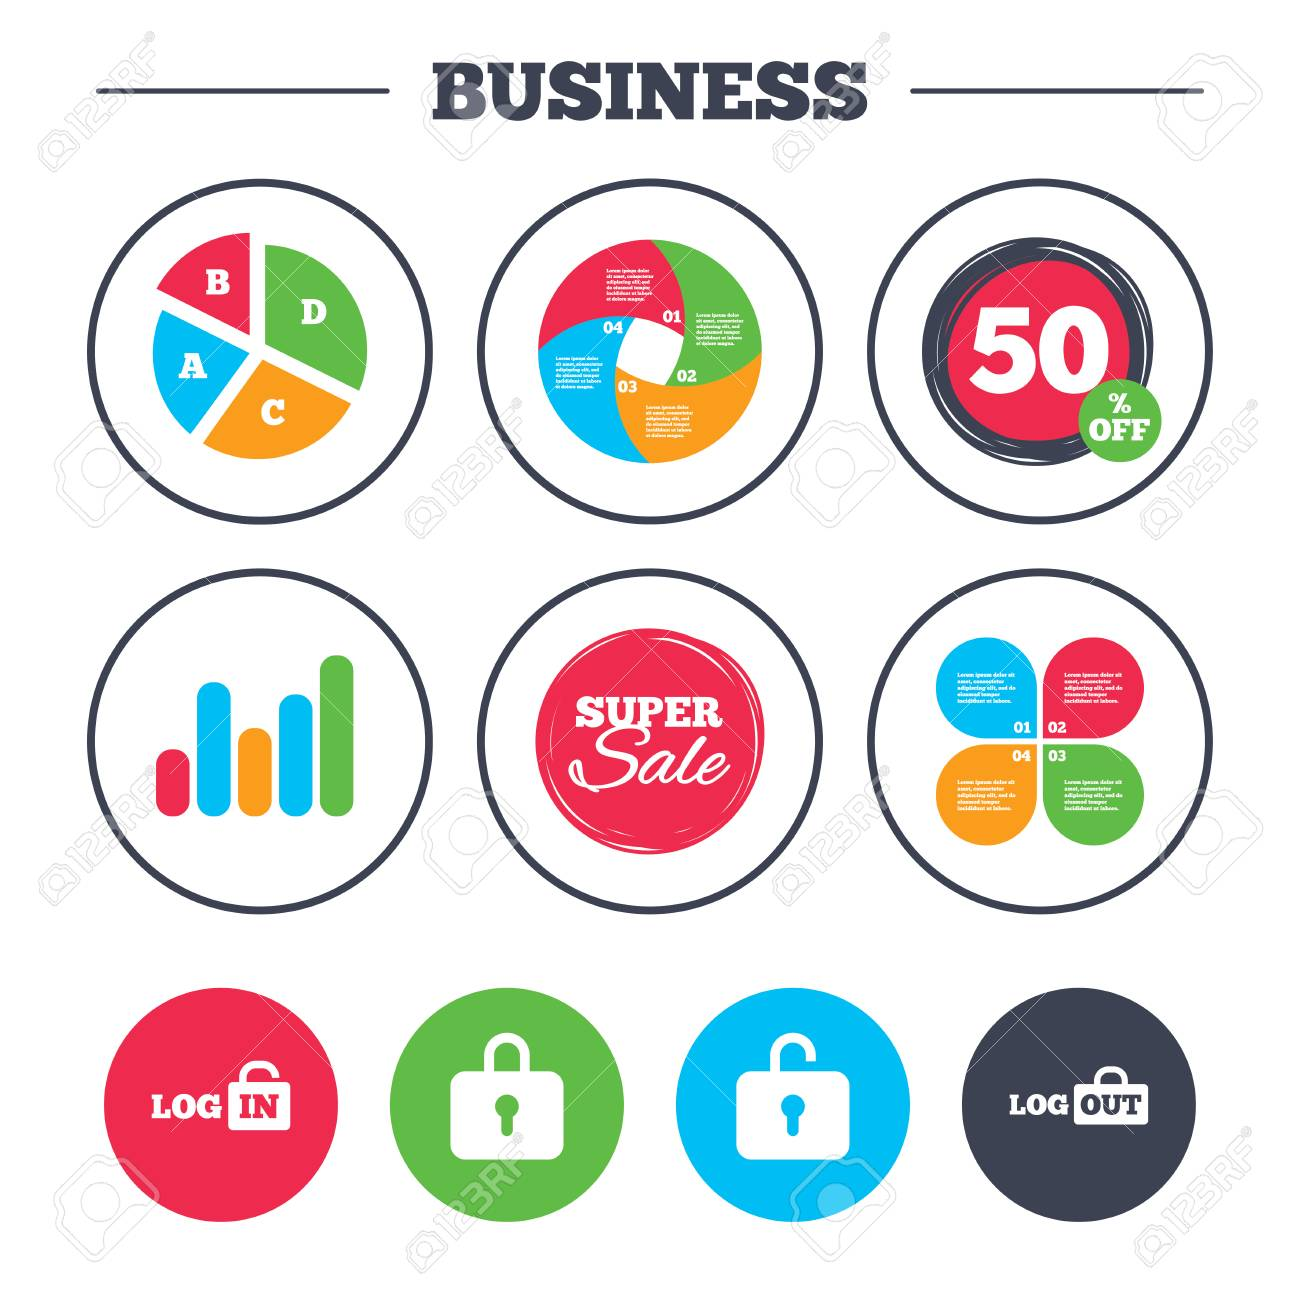 Business Pie Chart Growth Graph Login And Logout Icons Sign Royalty Free Cliparts Vectors And Stock Illustration Image 69398548